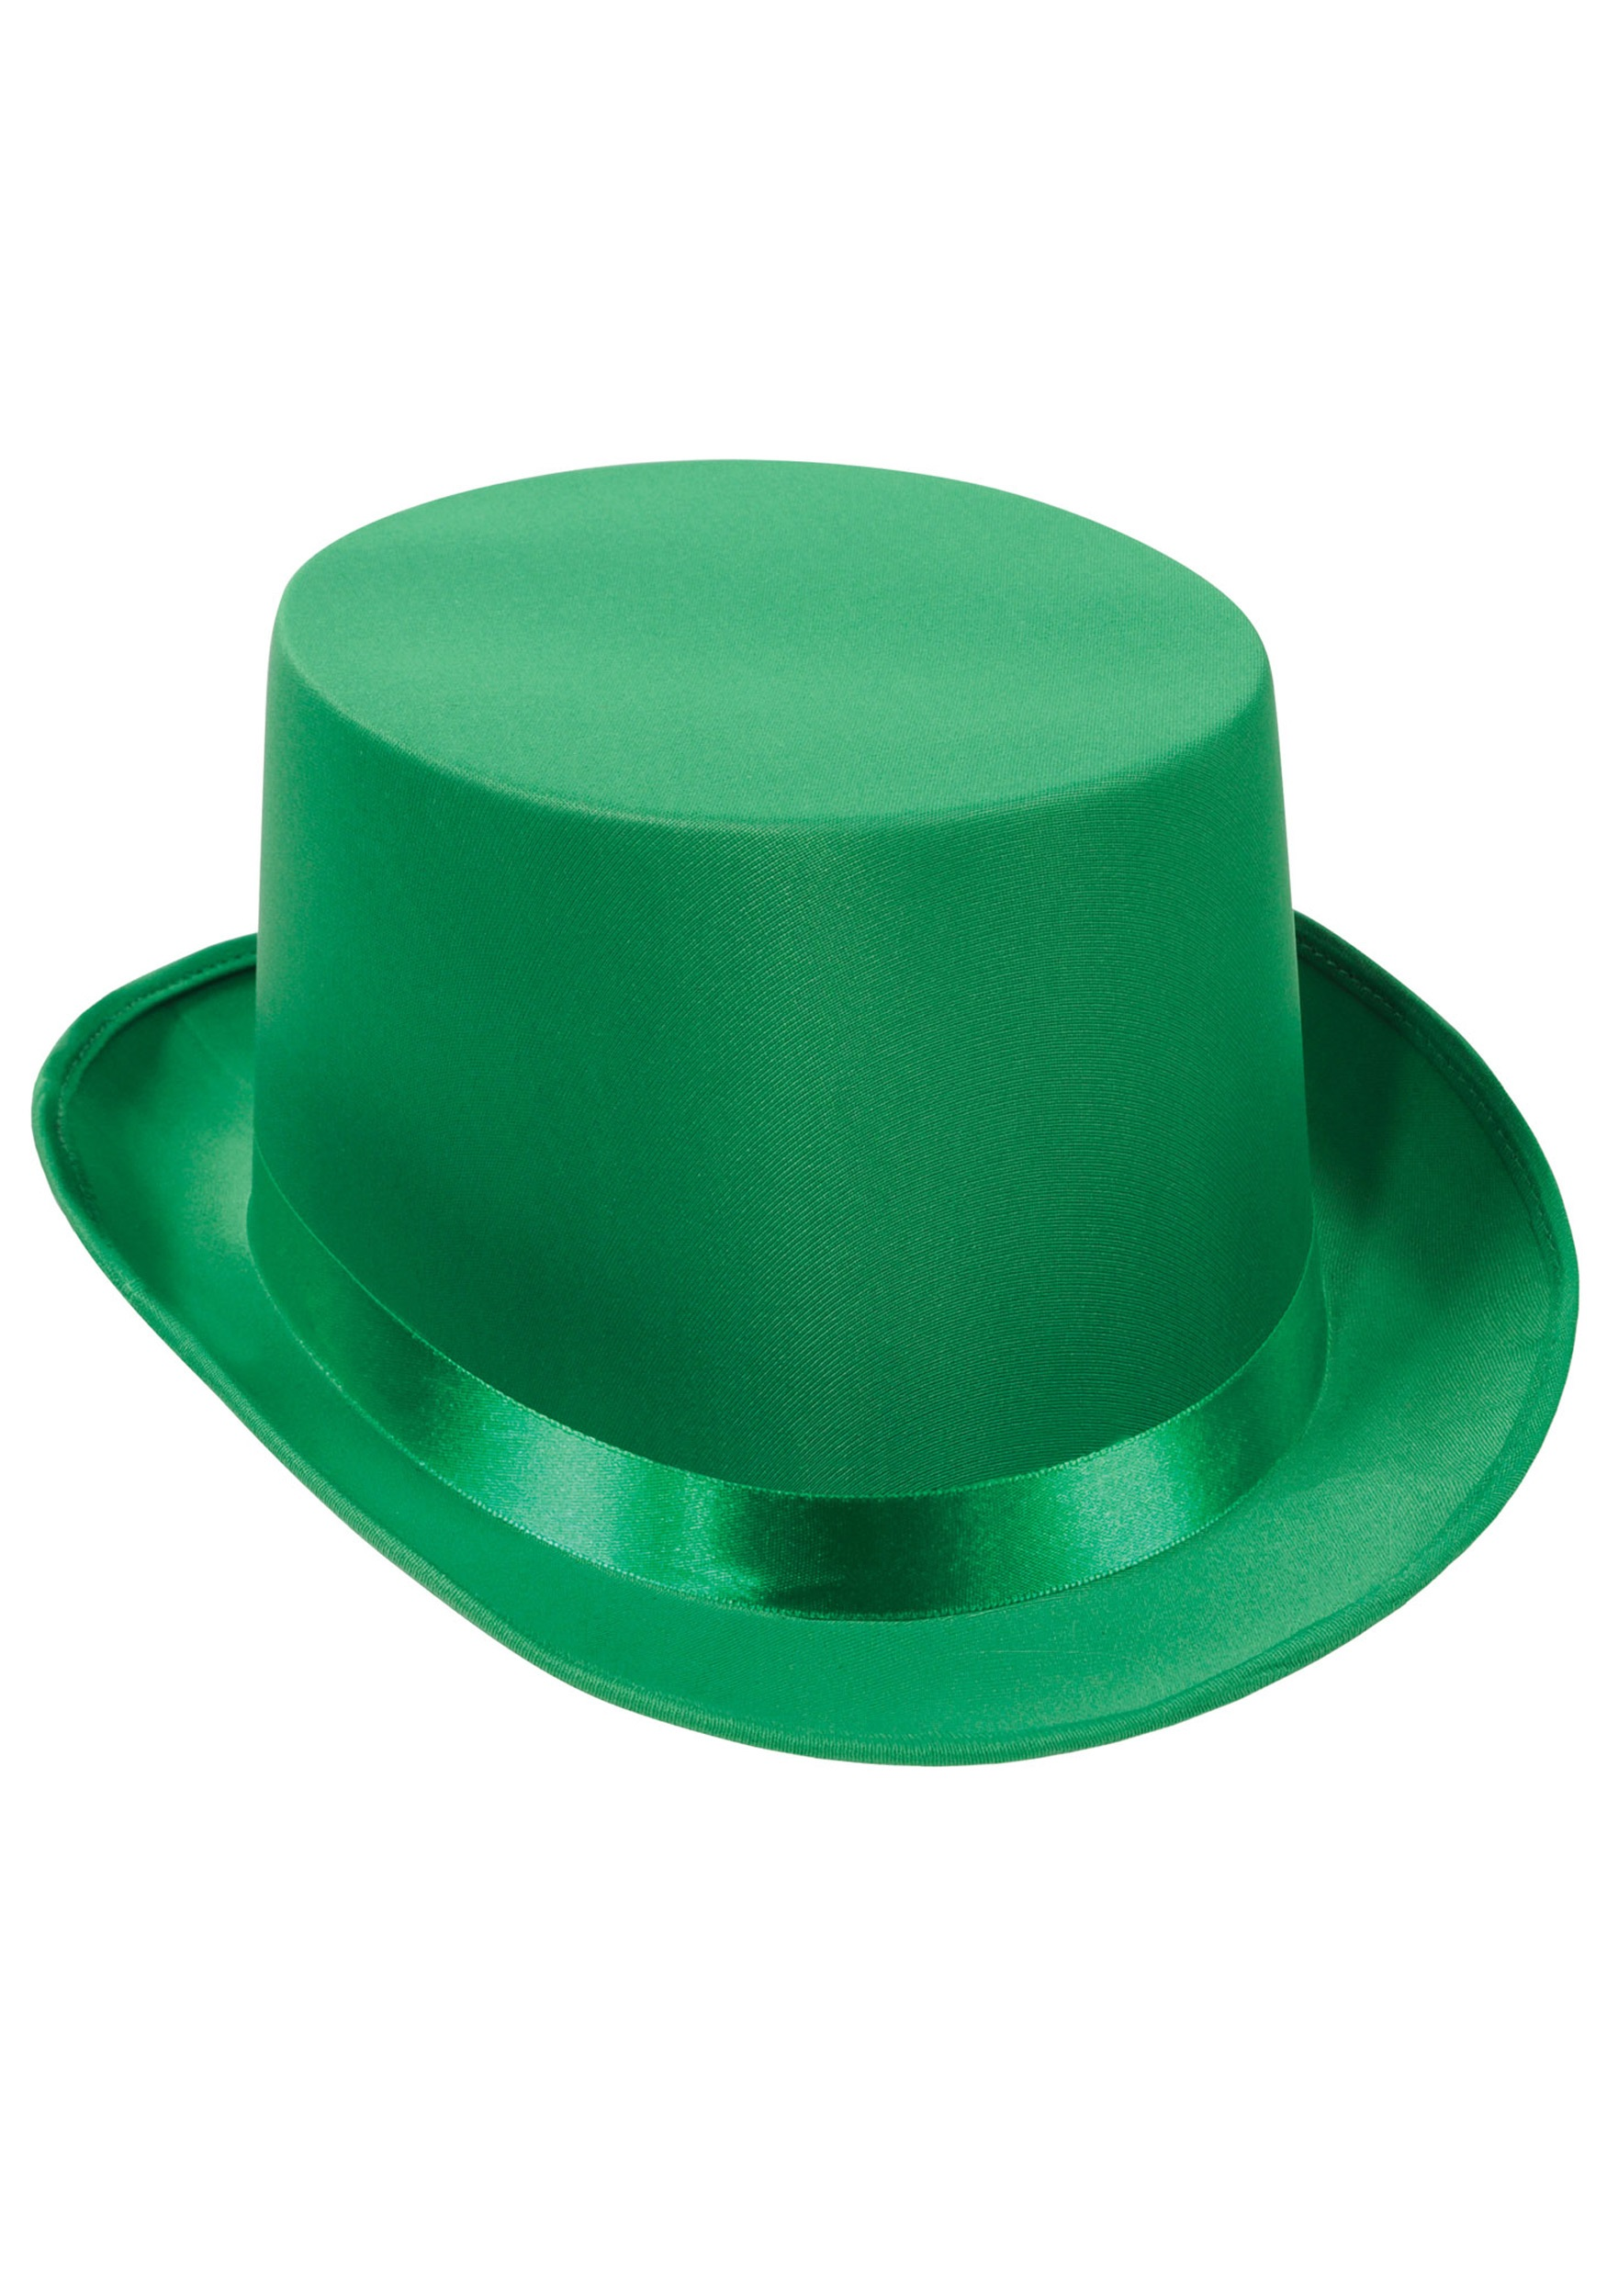 INOpets.com Anything for Pets Parents & Their Pets Green Top Hat